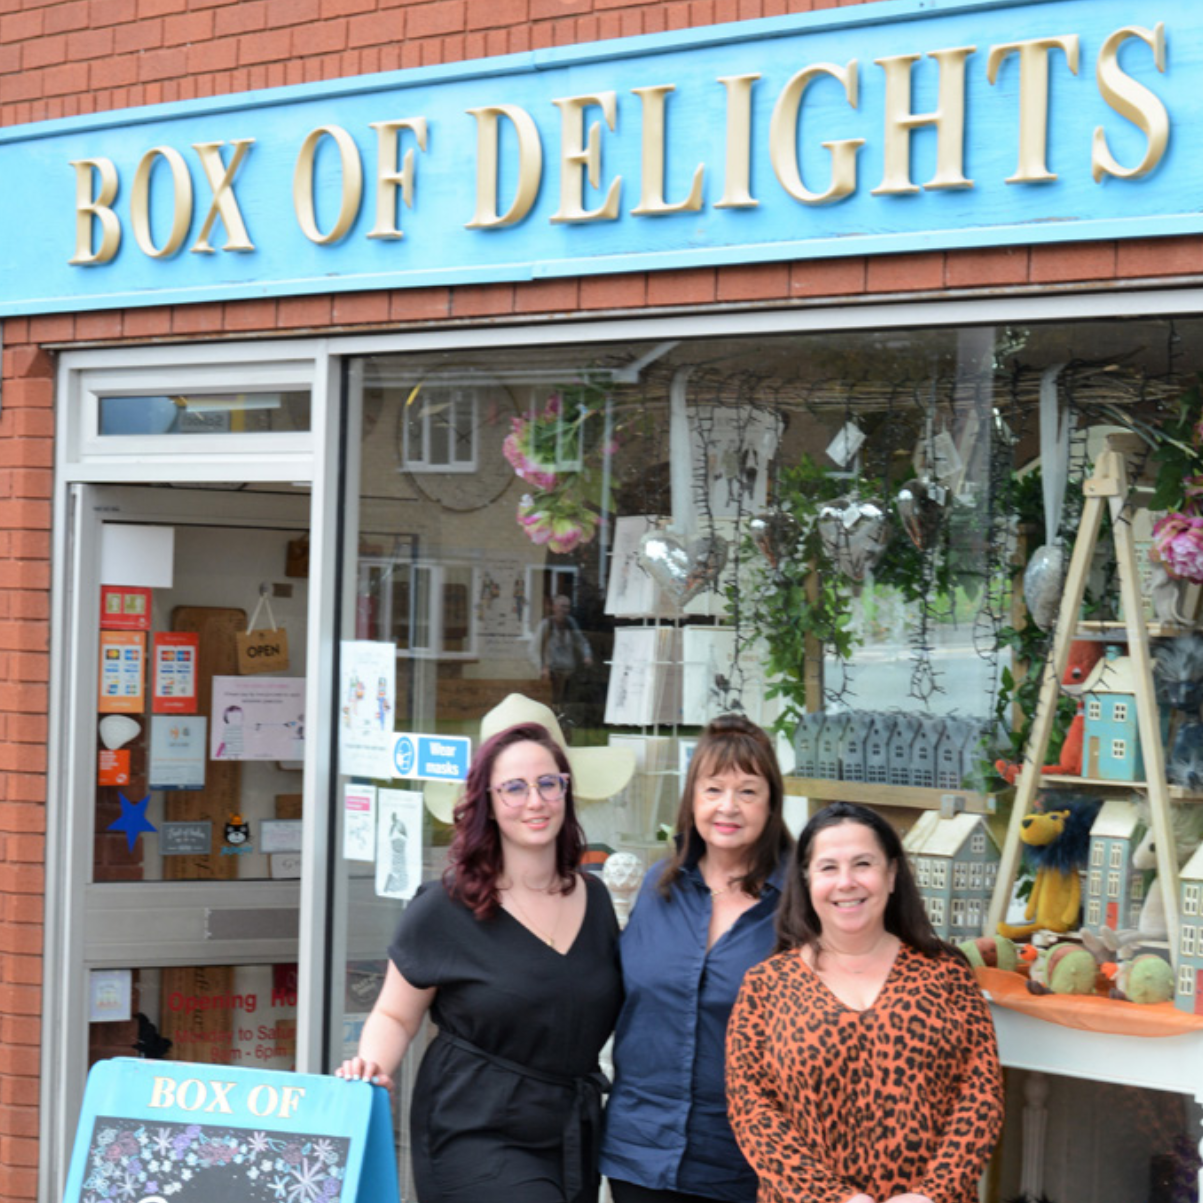 Above: The Flitwick retailer is now a three generation business.